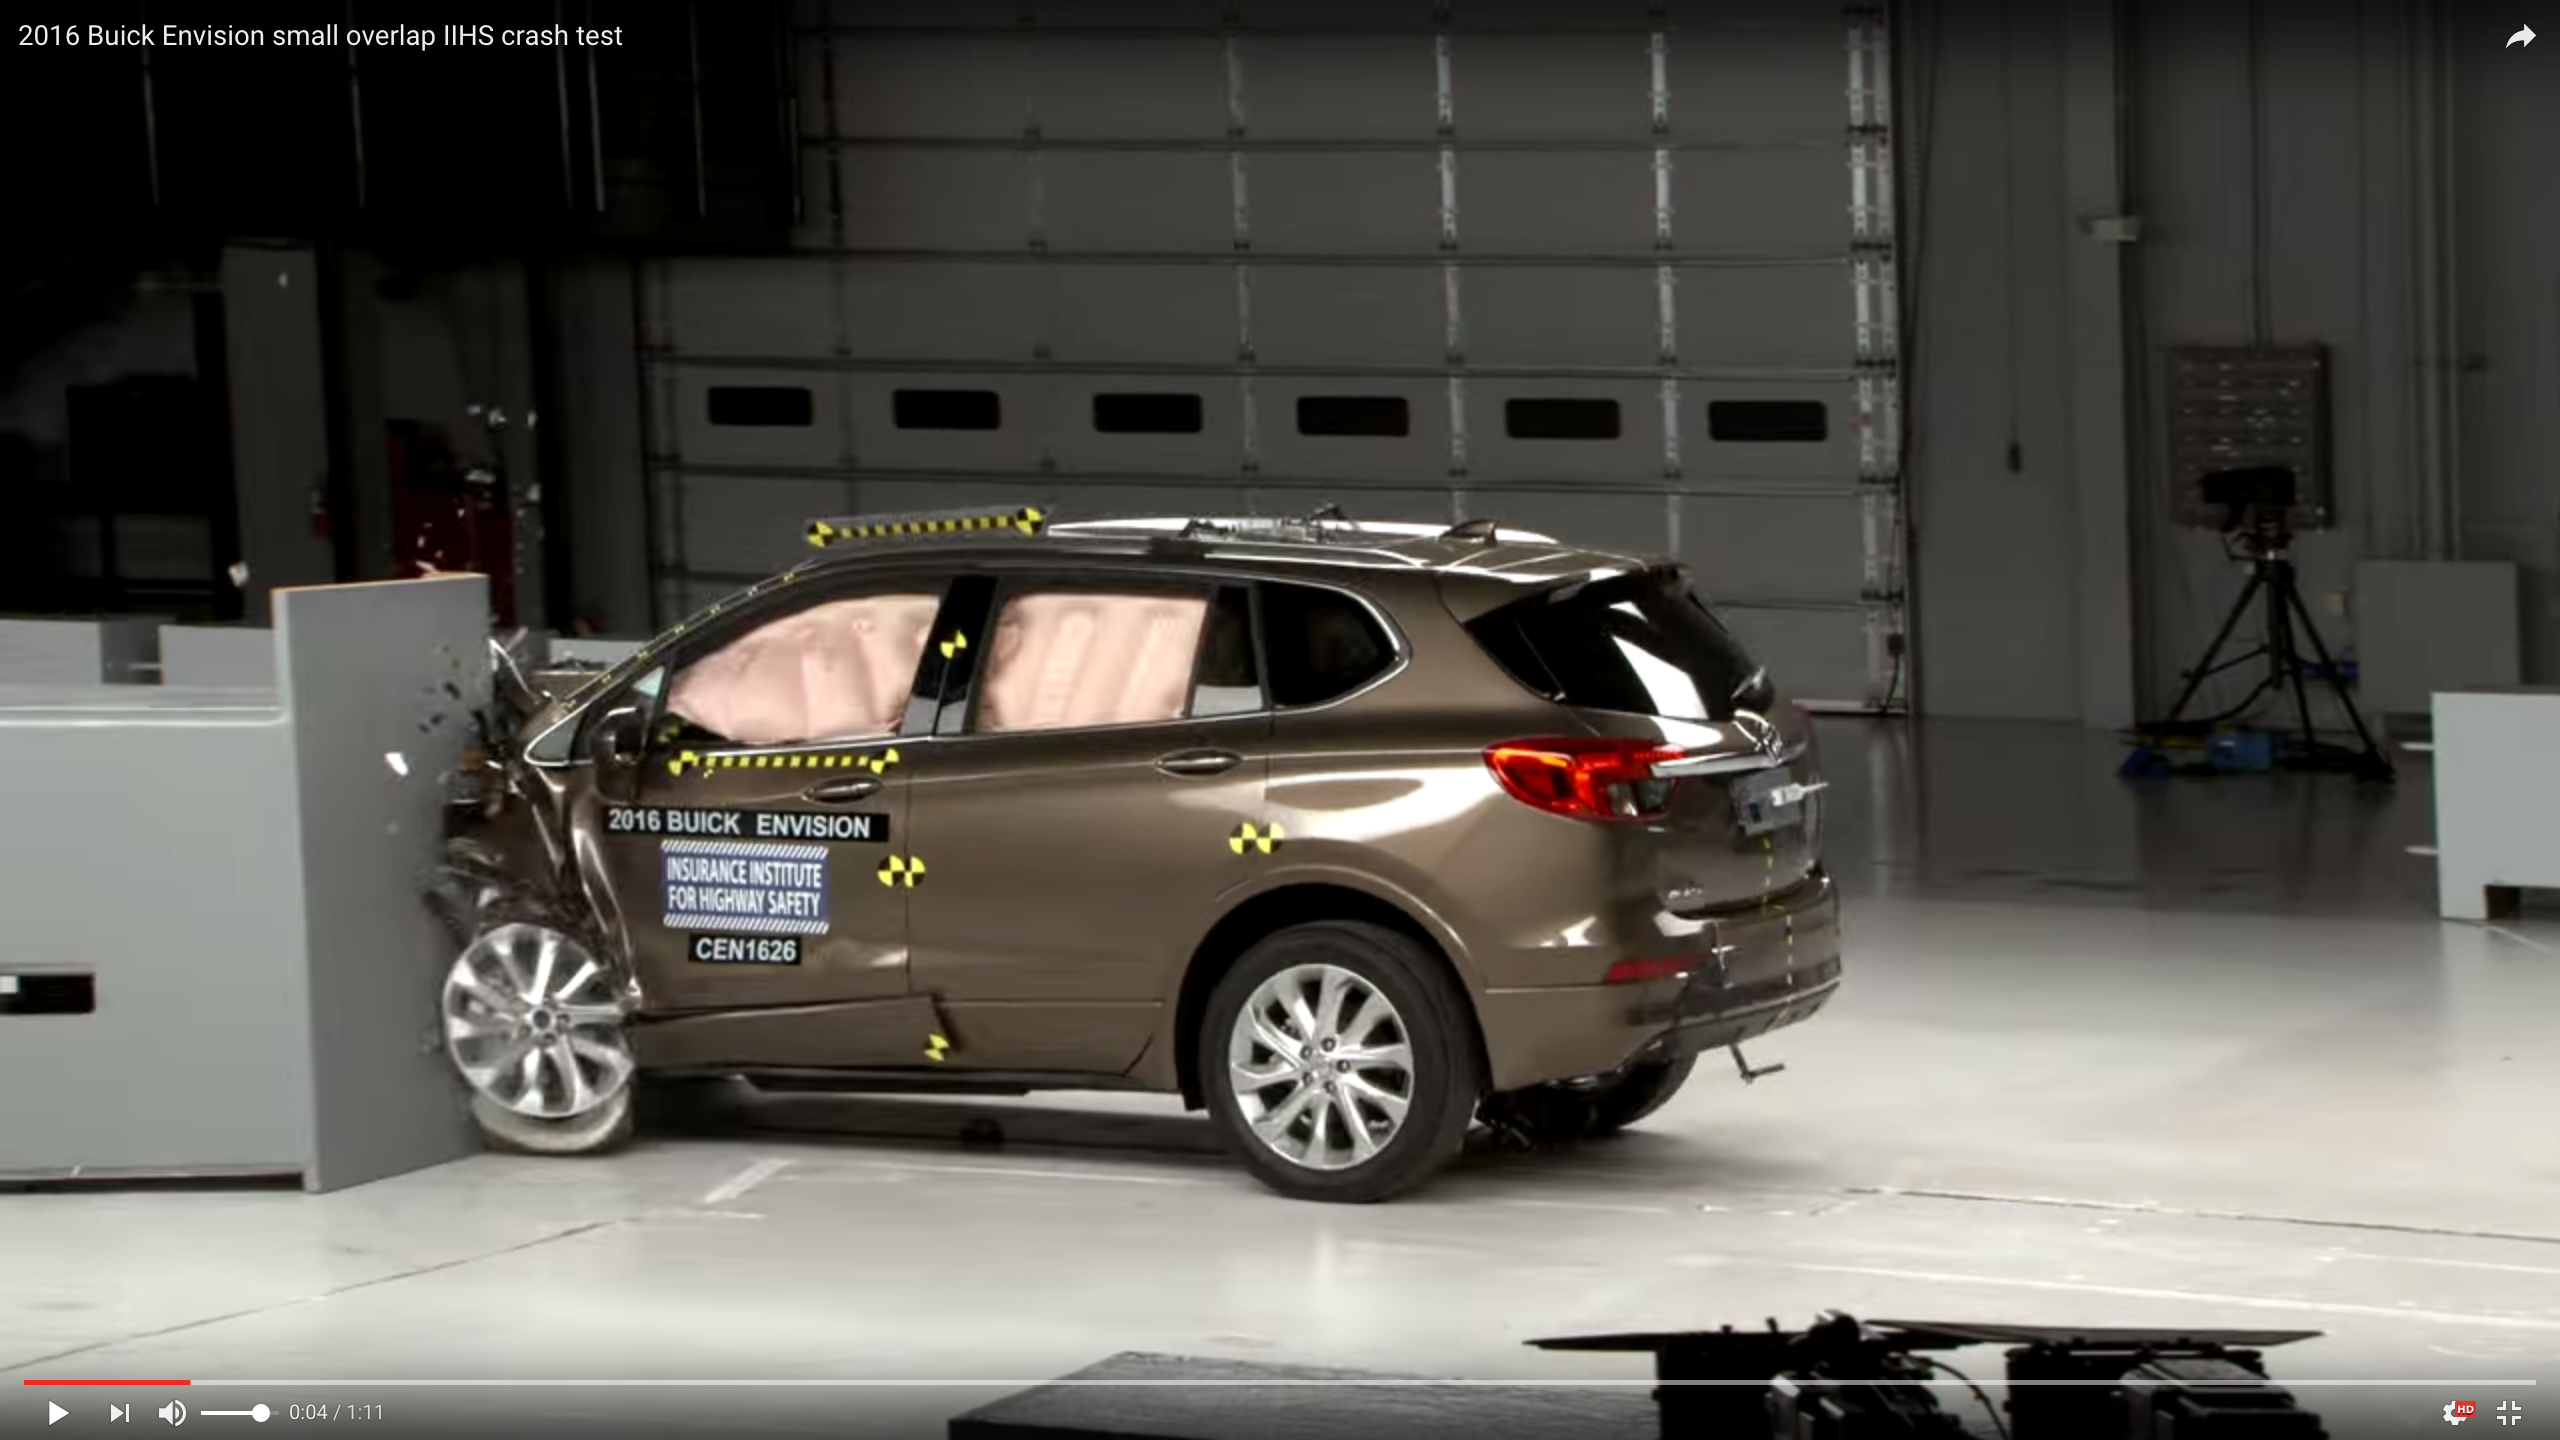 Video: Buick Envision Wins Top Safety Honor